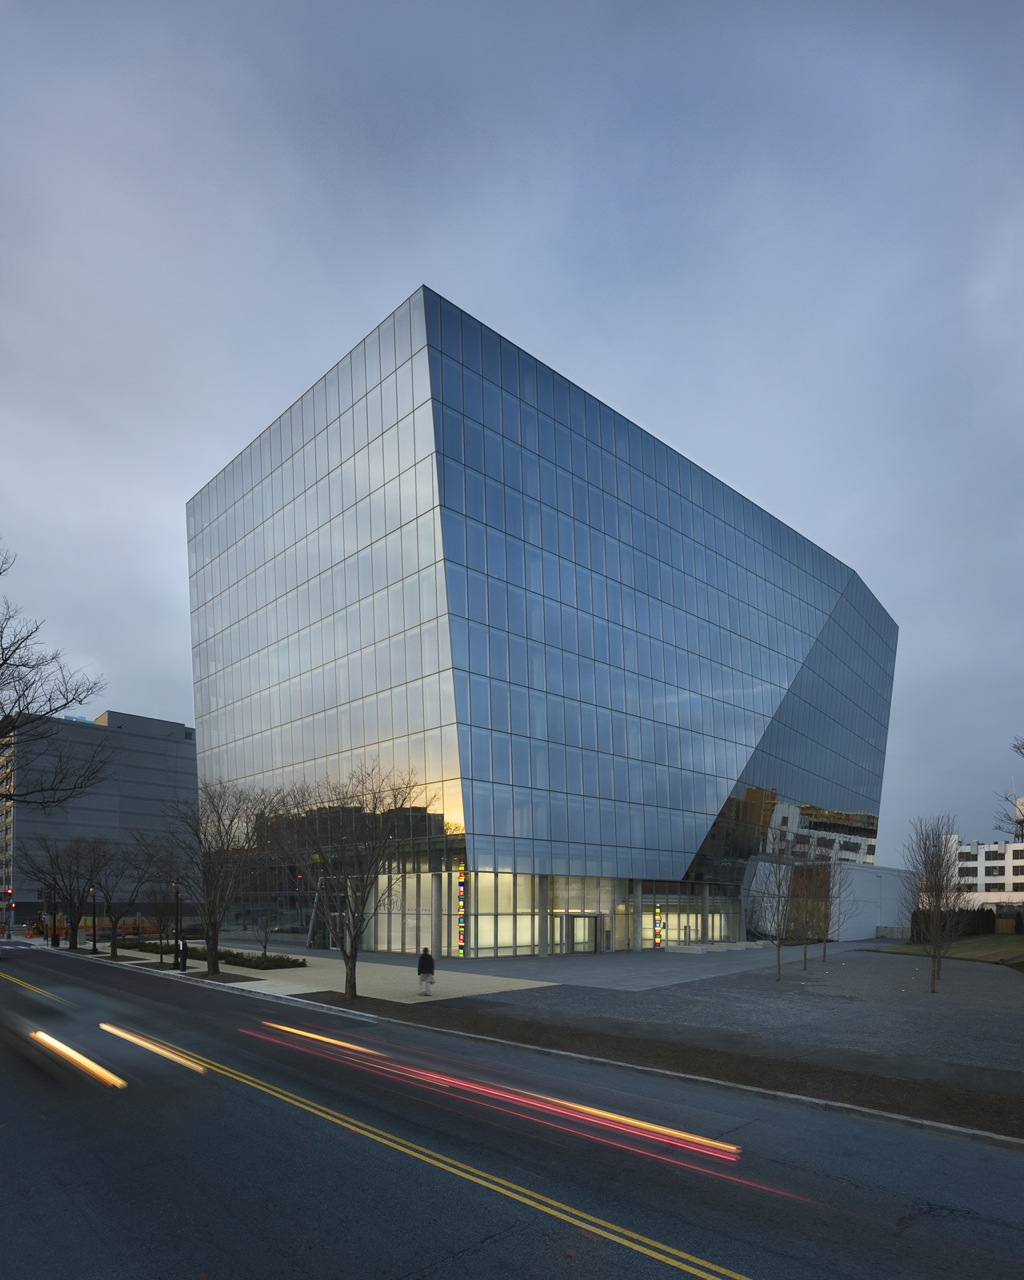 1100 First Street / Krueck & Sexton Architects, Courtesy of Prakash Patel